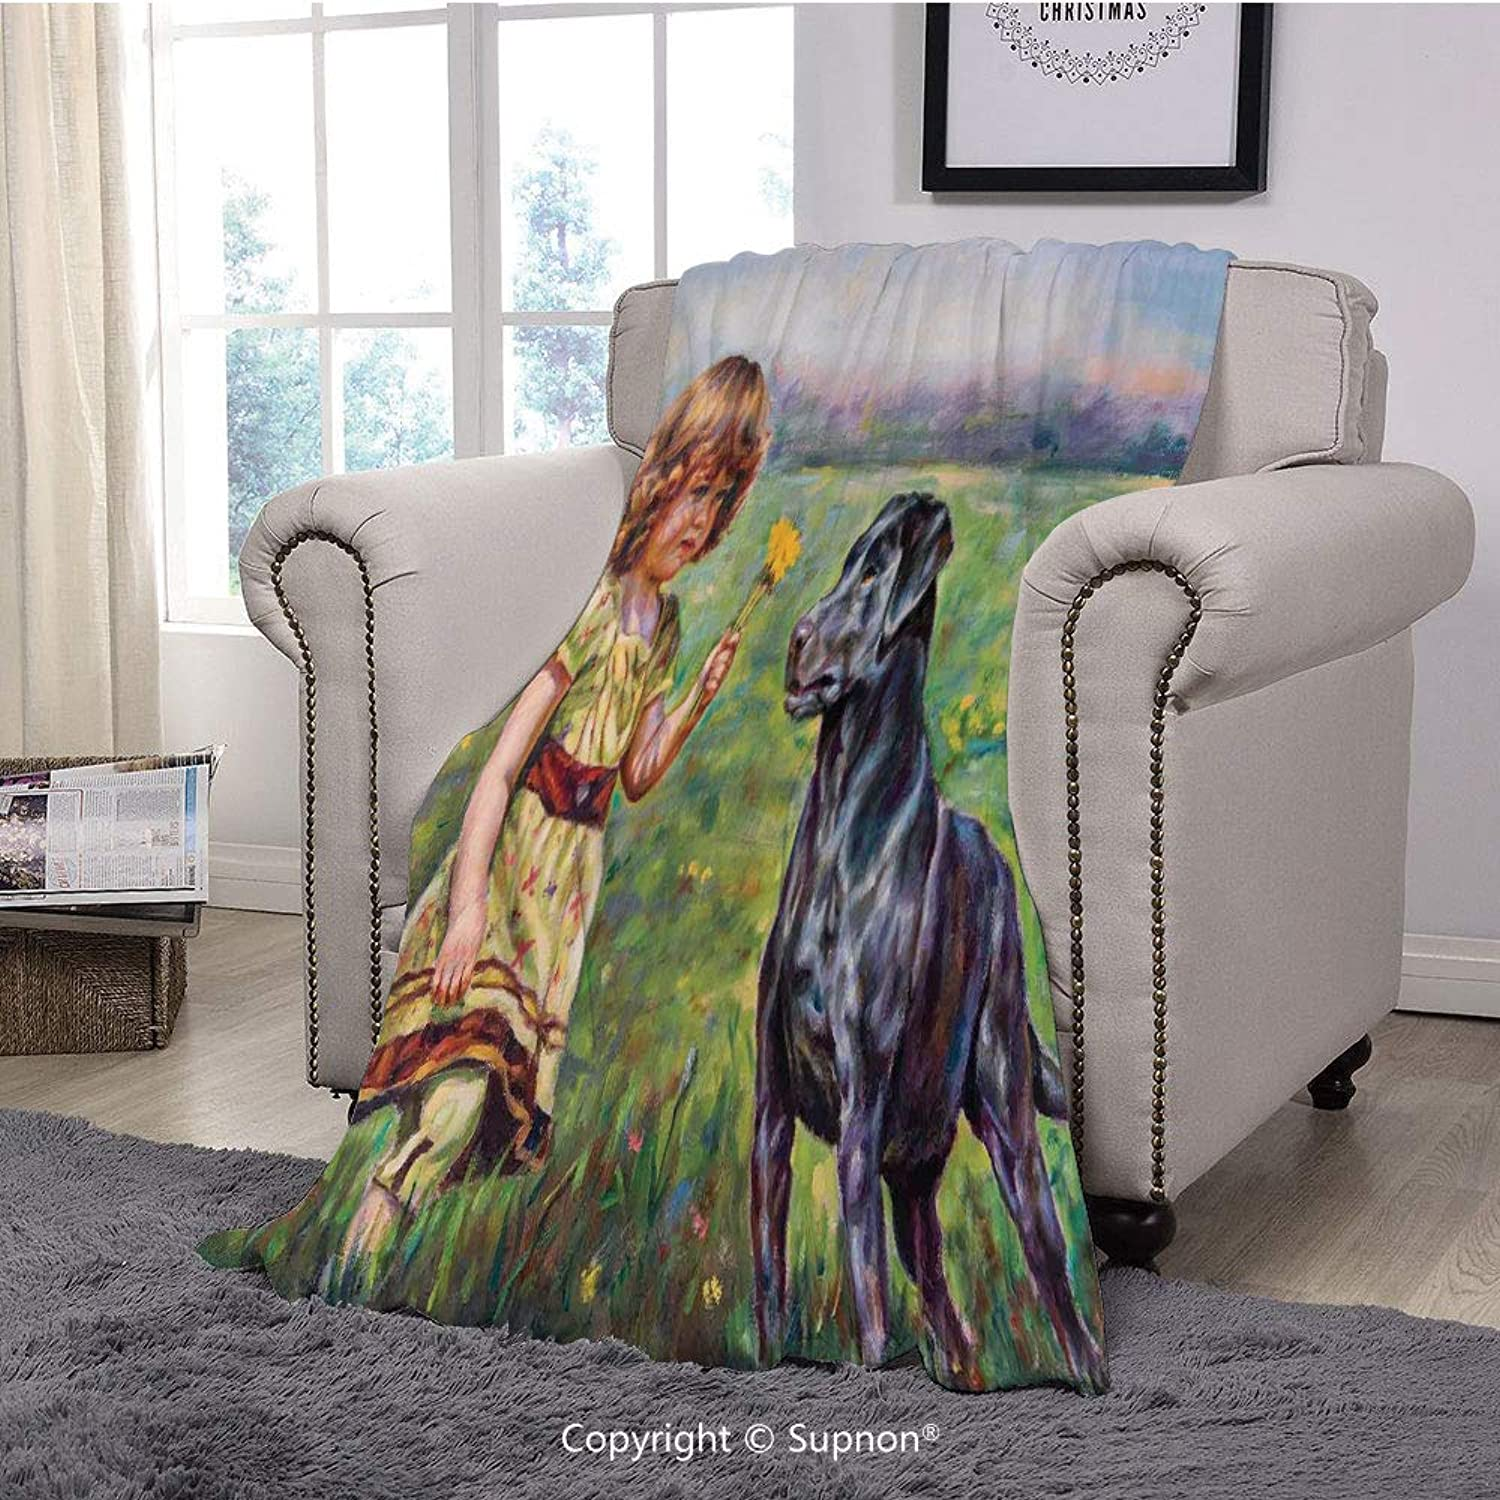 Printing Blanket Coral Plush Super Soft Decorative Throw Blanket,Country Decor,Paint of a Cute Little Girl with her Tiny Flower and Dog in The Meadow Pastoral Art Work,Multi(59  x 59 )